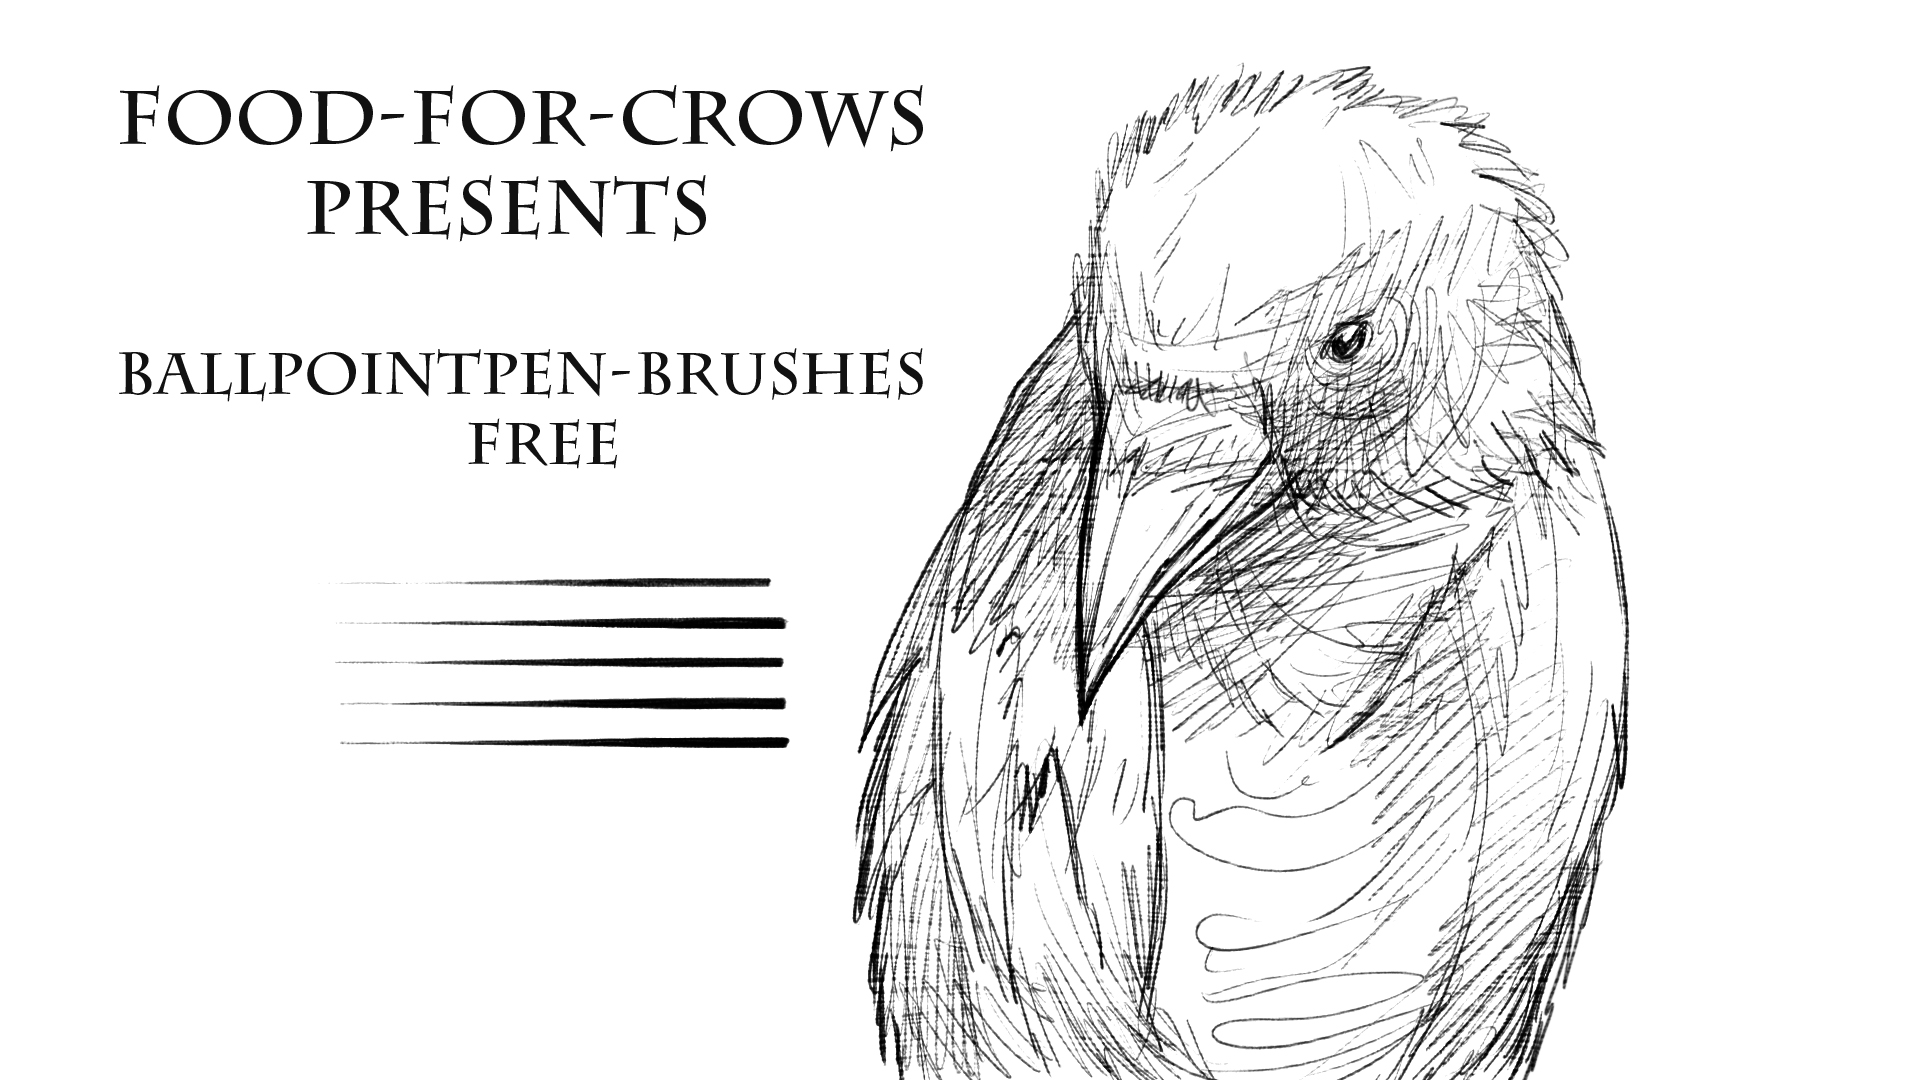 Ballpointpen Brushes - Free by Food-For-Crows on DeviantArt